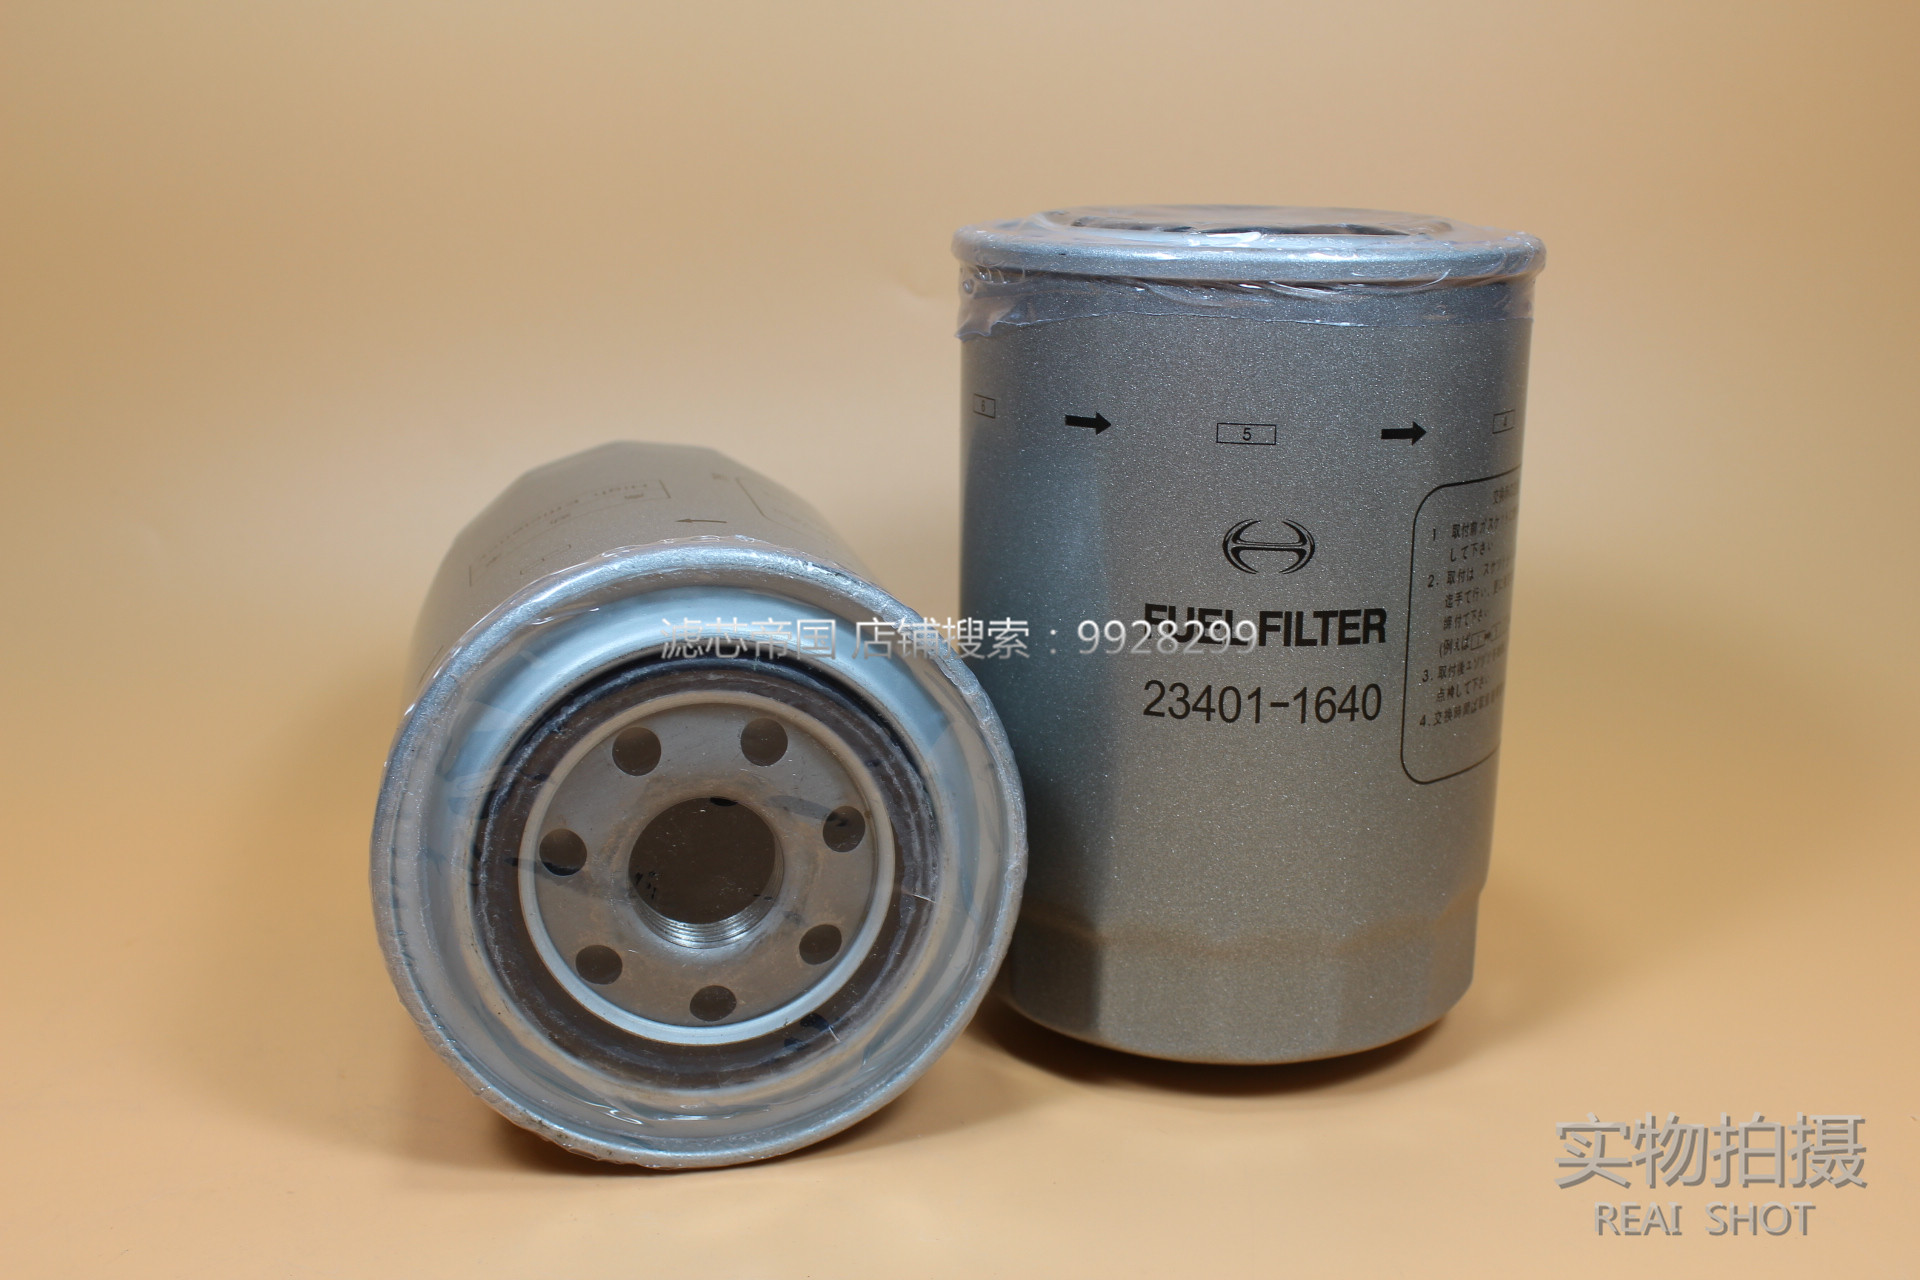 hight resolution of adapted to hino fuel filter 23401 1640 grid s2340 11640 diesel filter 23401